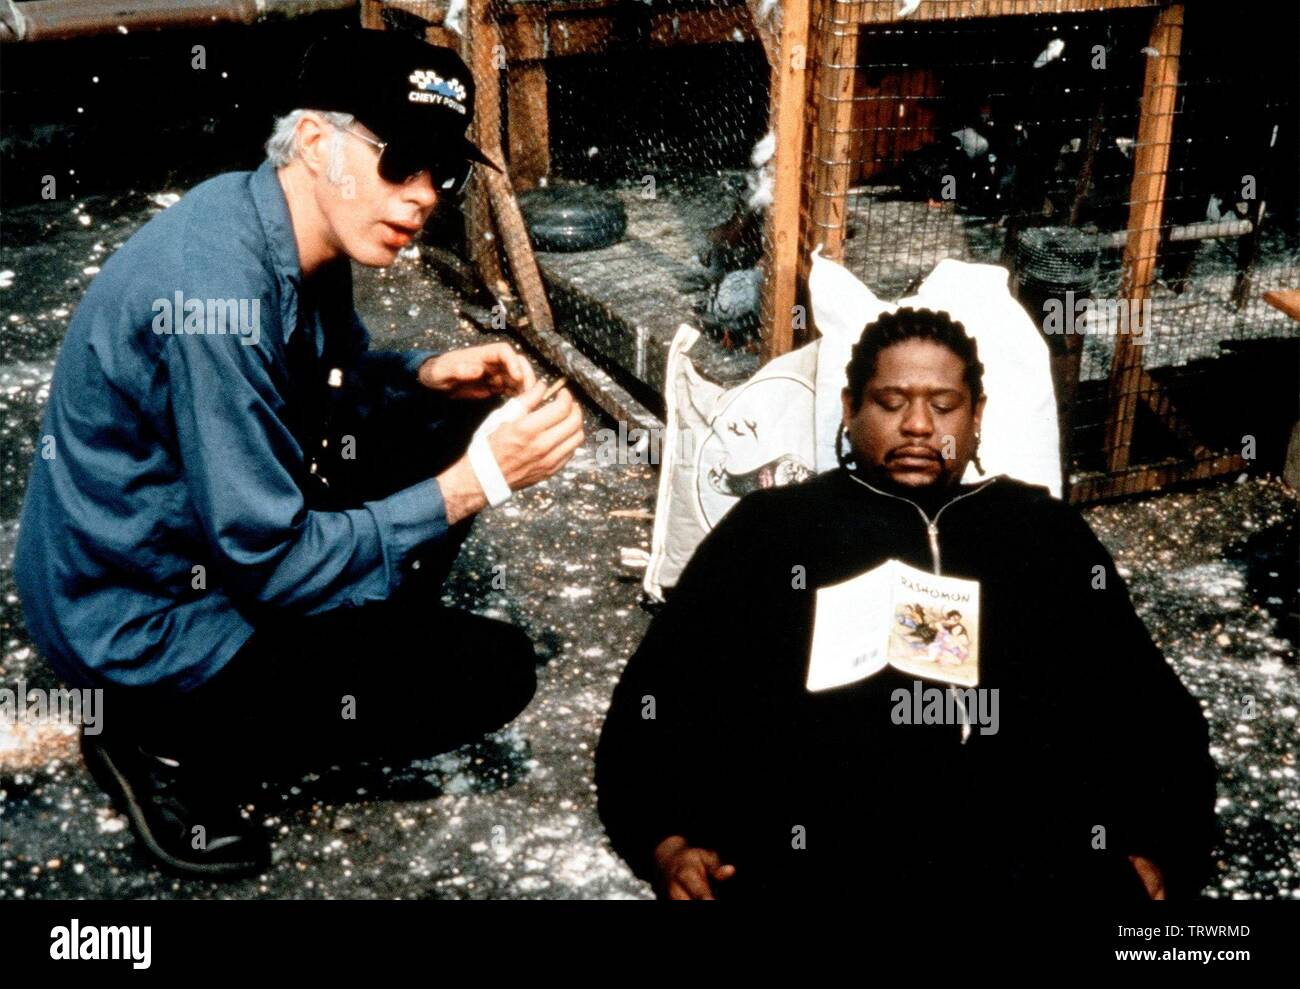 FOREST WHITAKER and JIM JARMUSCH in GHOST DOG: THE WAY OF